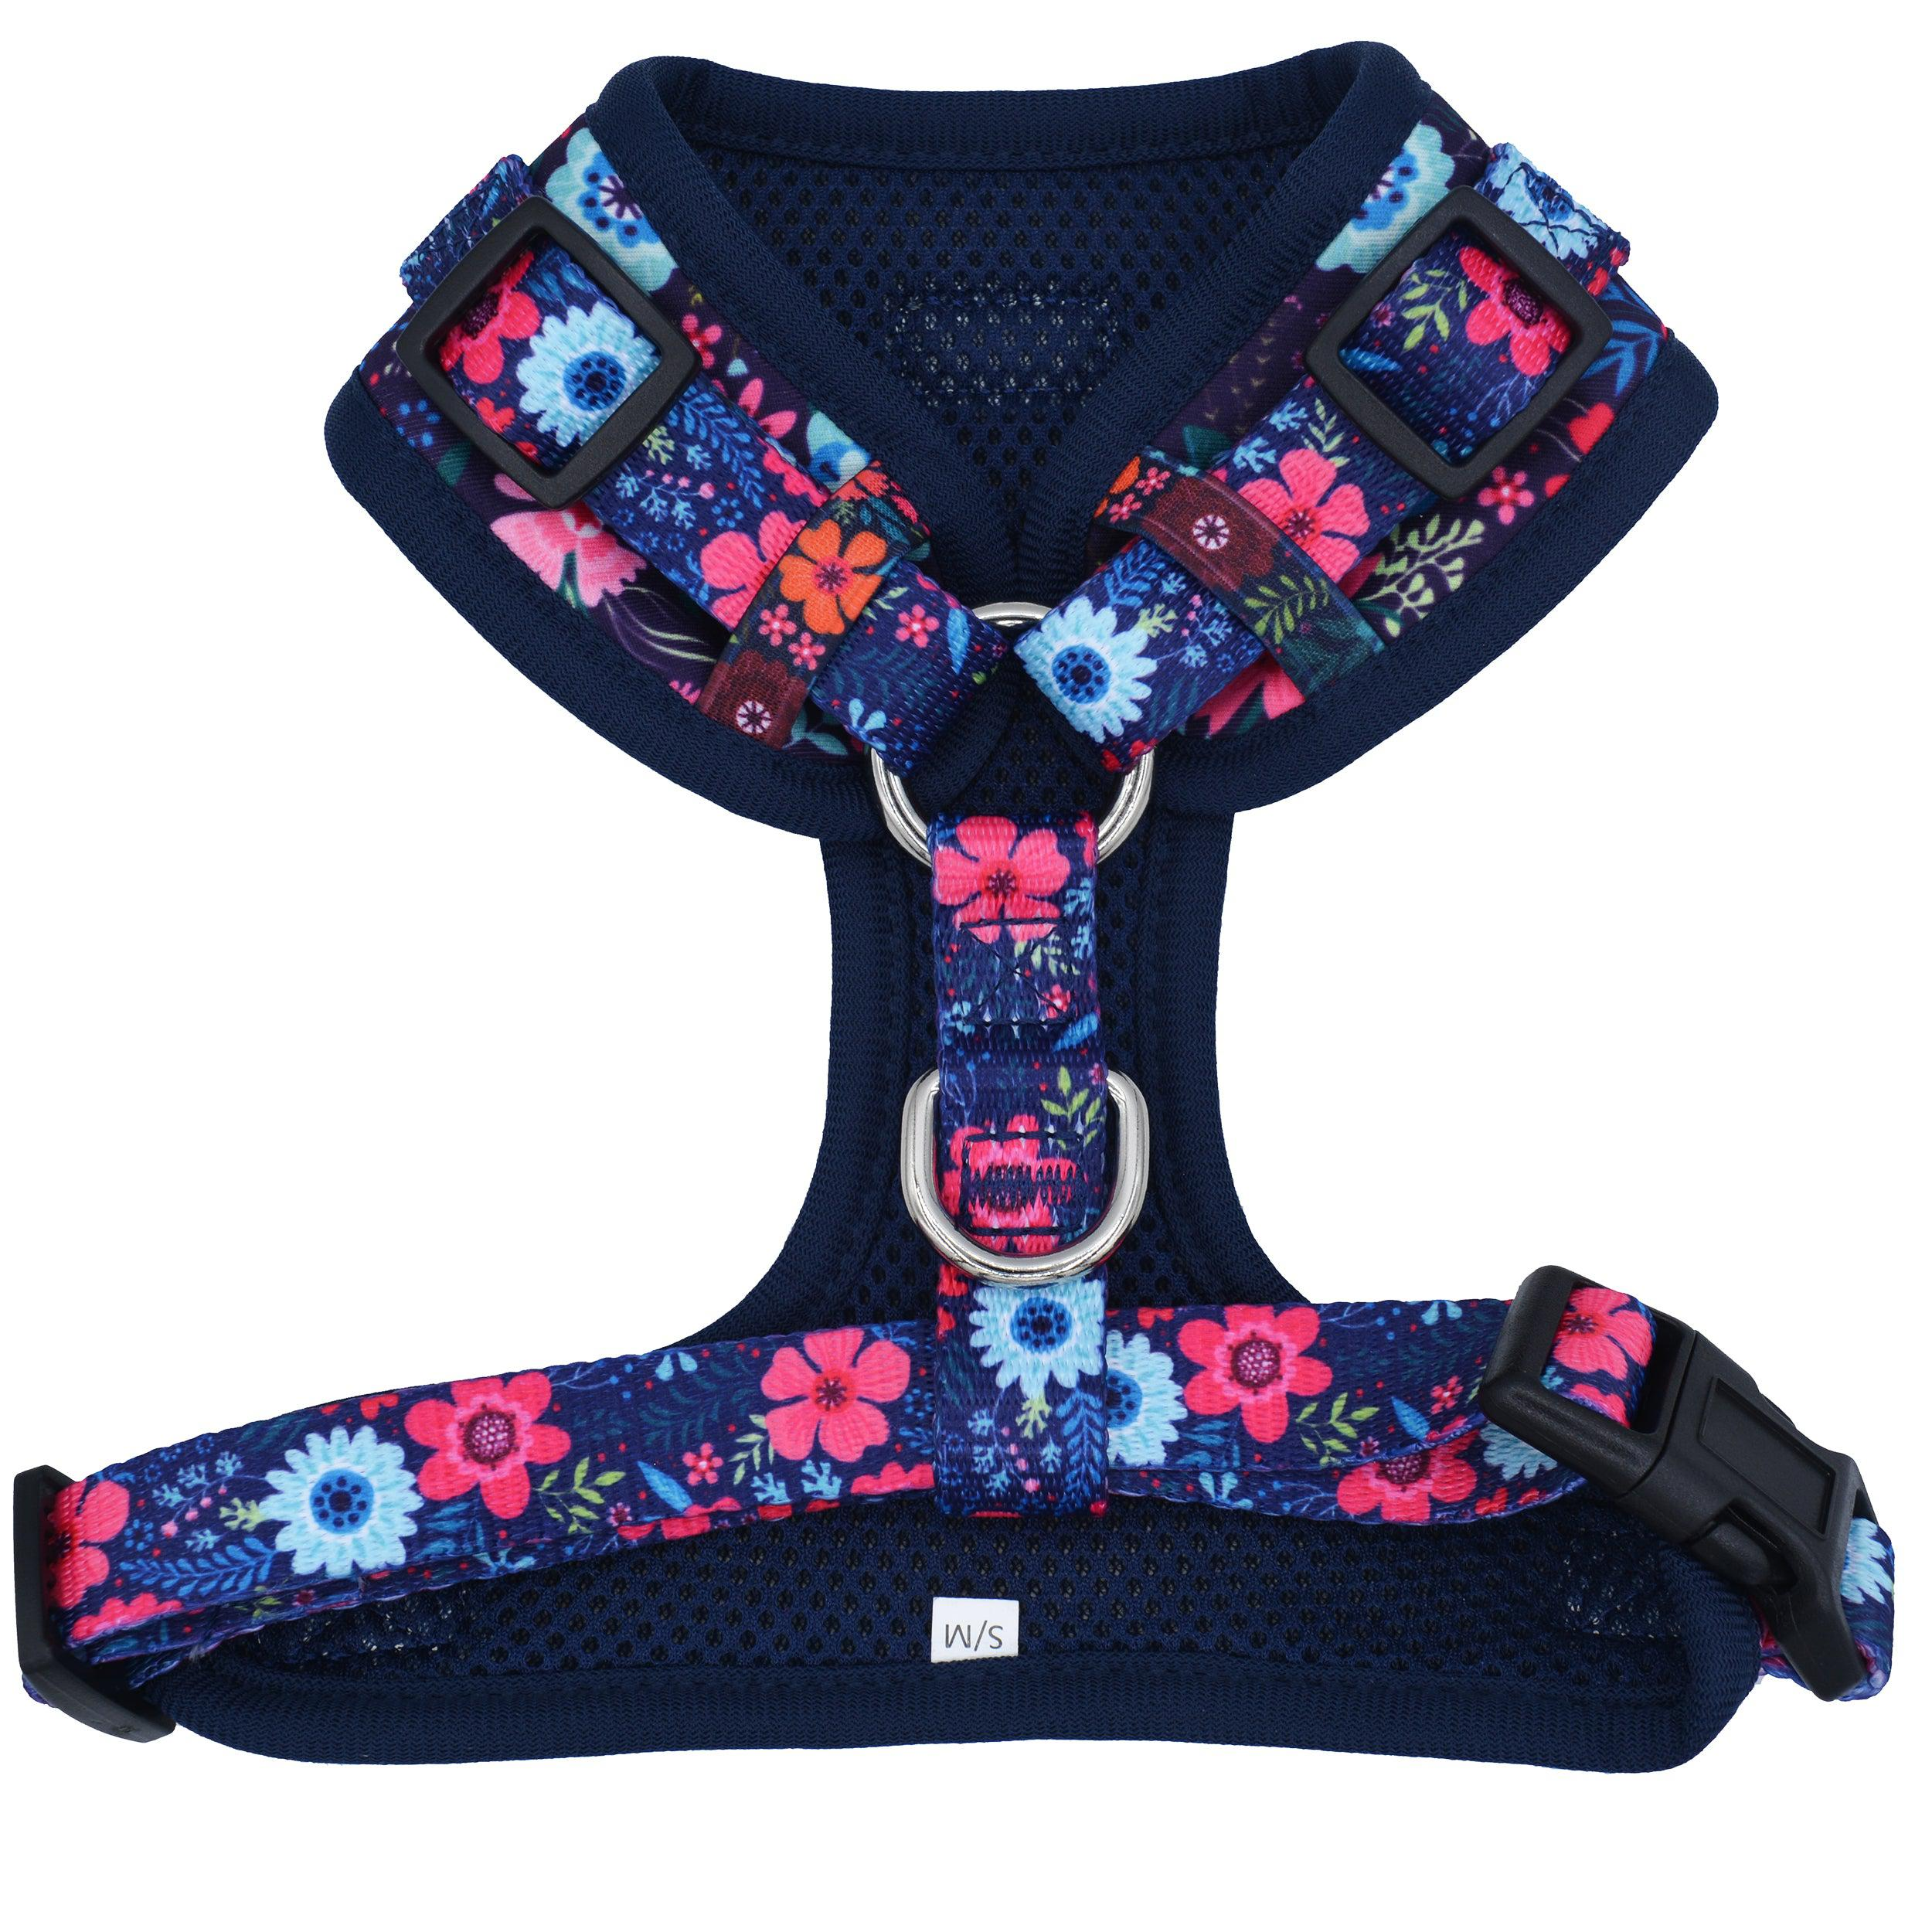 DOG HARNESS - Navy Floral - Neck Adjustable Harness (Premade)-Harness-Dizzy Dog Collars